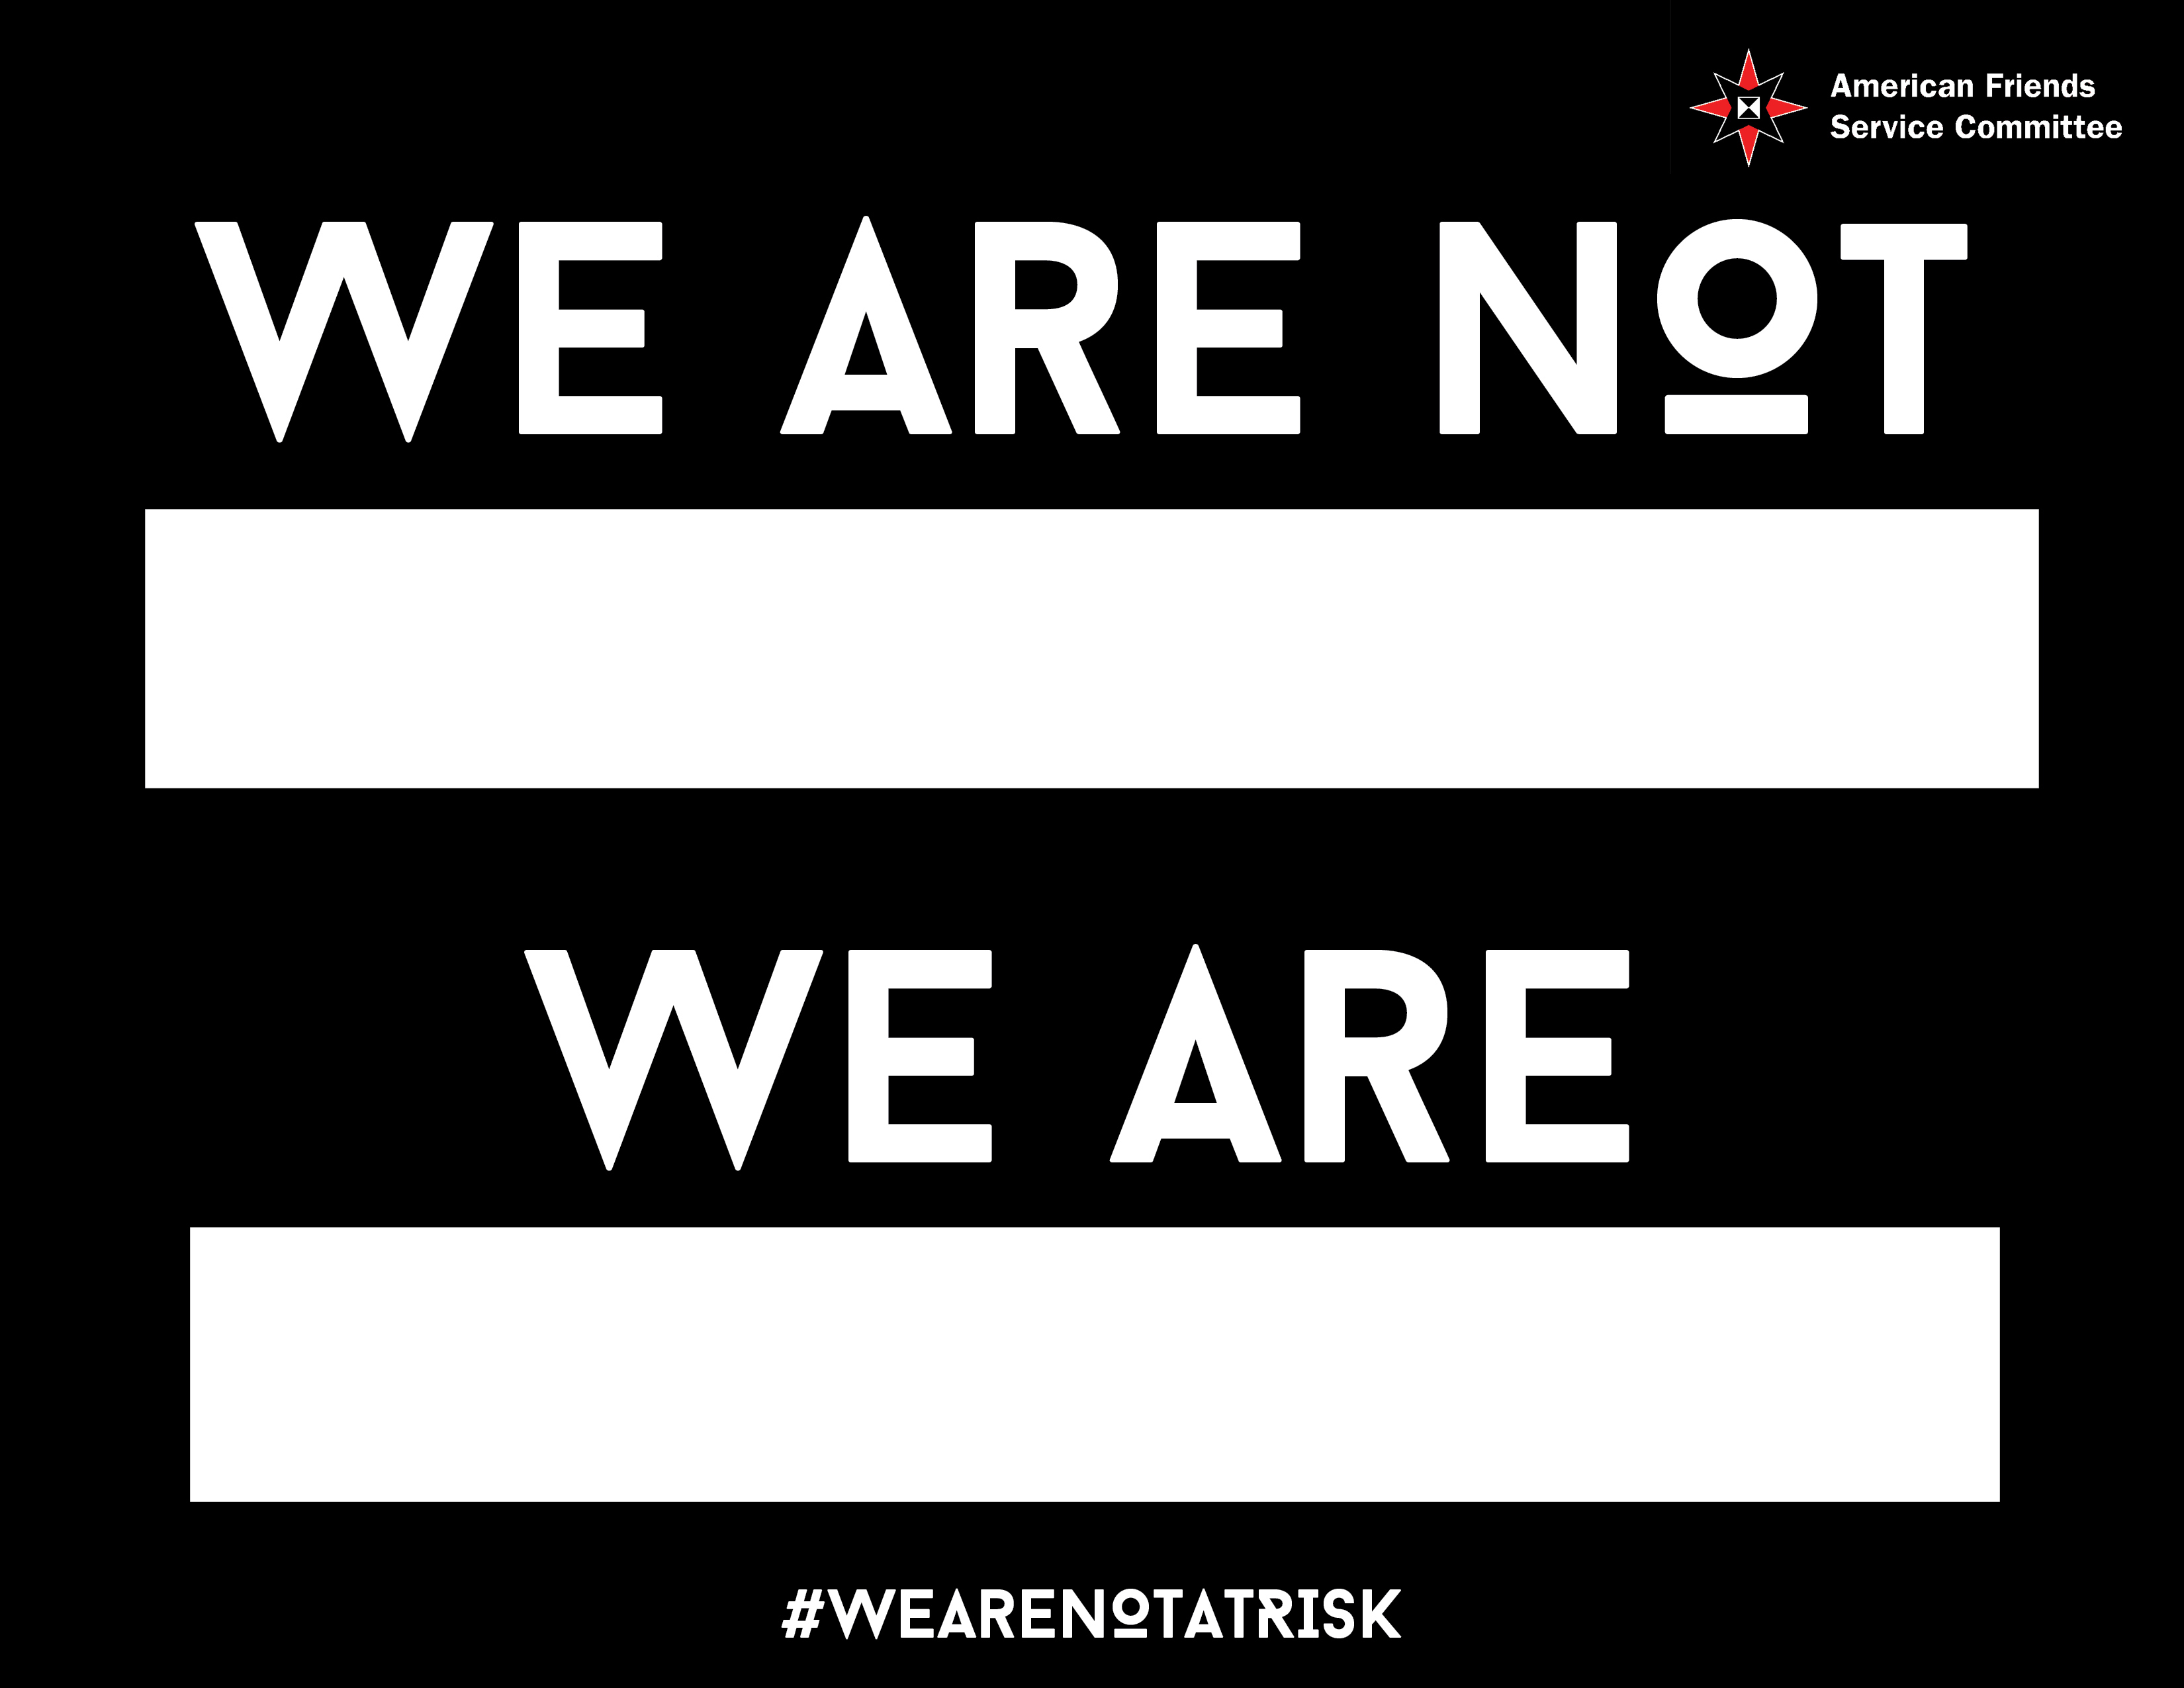 We are not at risk sign_English